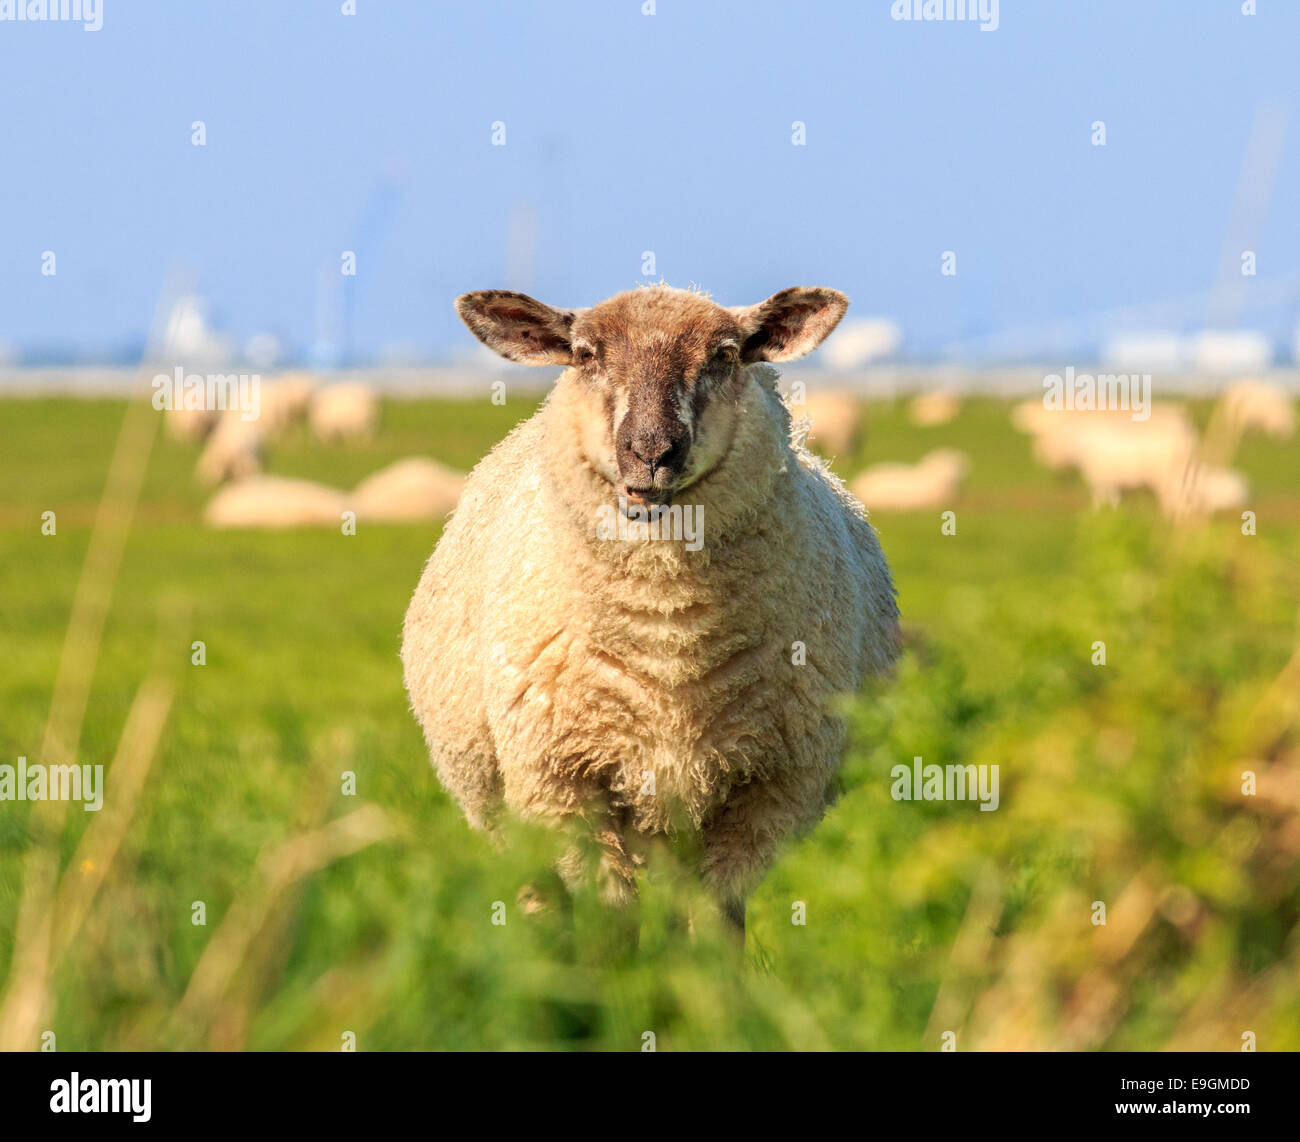 A droll ruminating sheep in the meadow - Stock Image